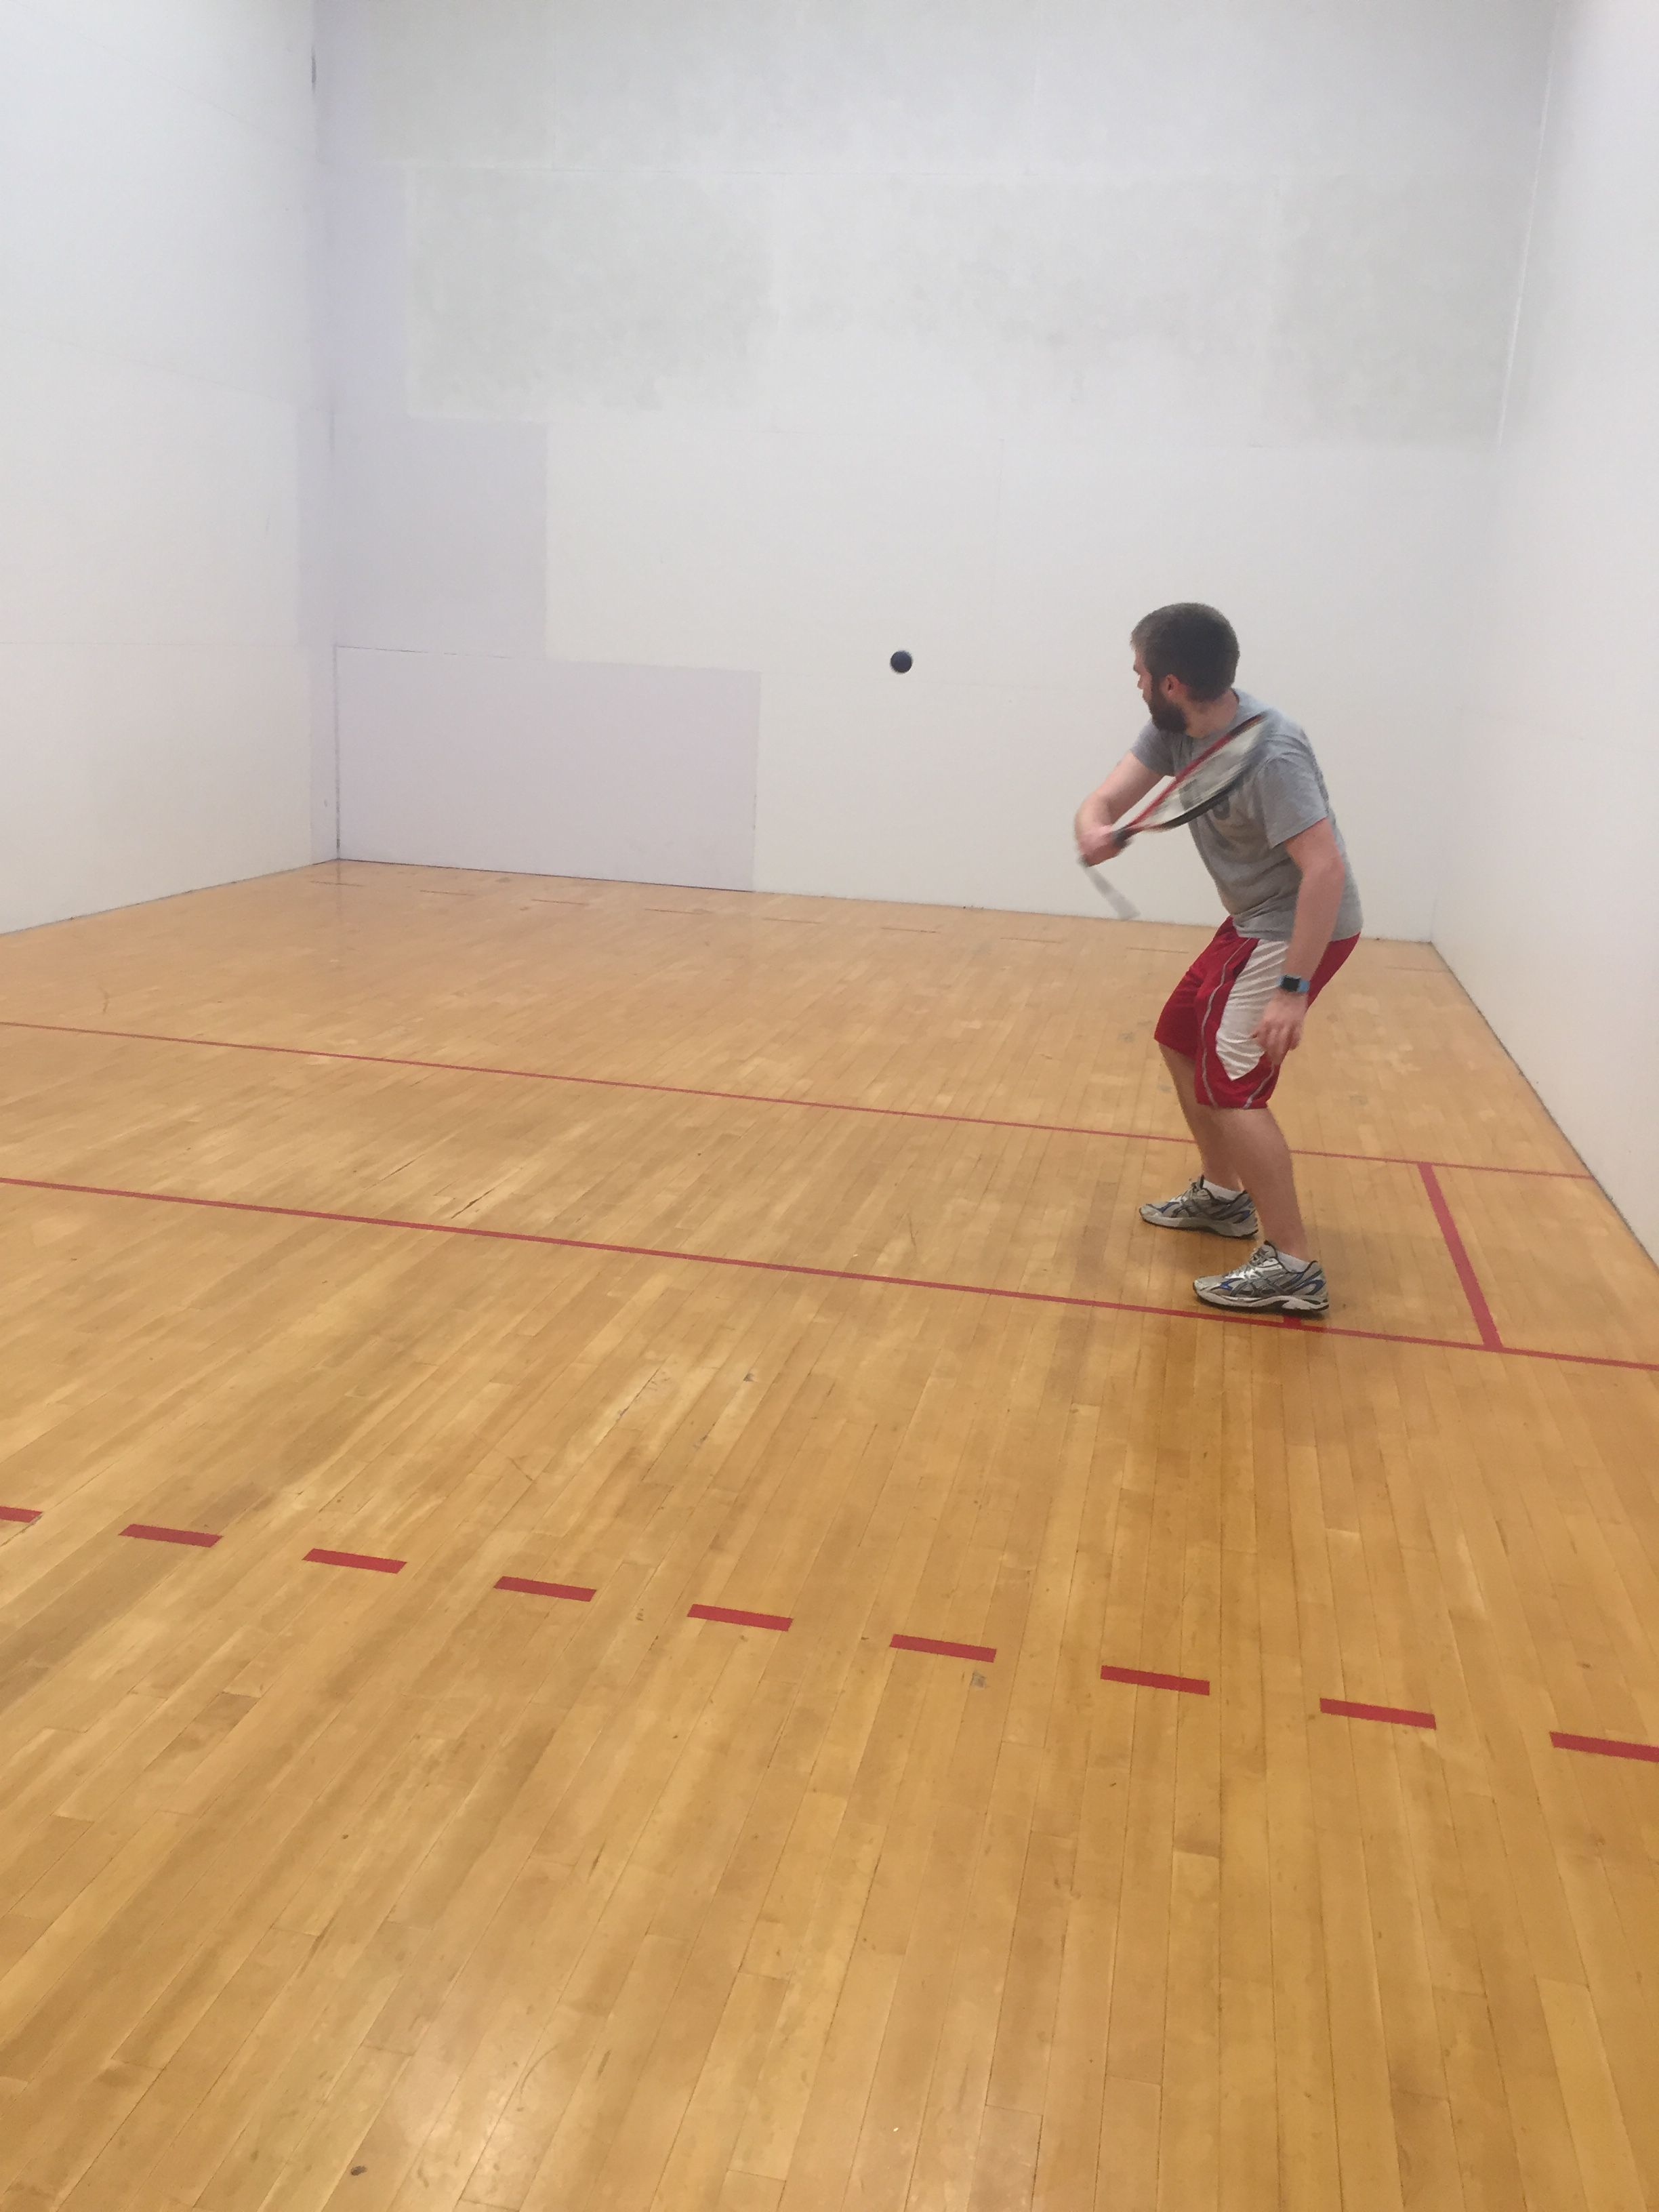 Fitness Connection Six Forks : fitness, connection, forks, Little, Known, #secrets, #raleigh., Fitness, Connection, Member:, #racquetball, Court, Celebrati…, Racquetball,, Court,, Celebrities